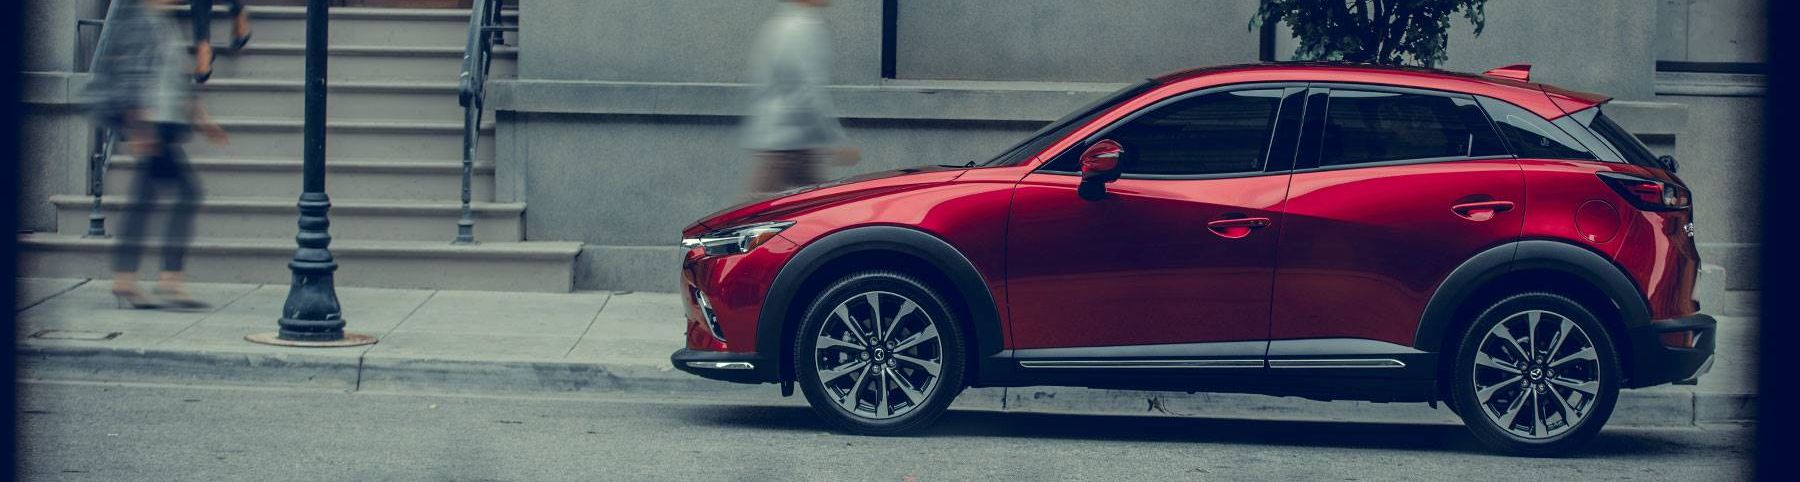 2019 Mazda CX-3 for Sale near Universal City, TX